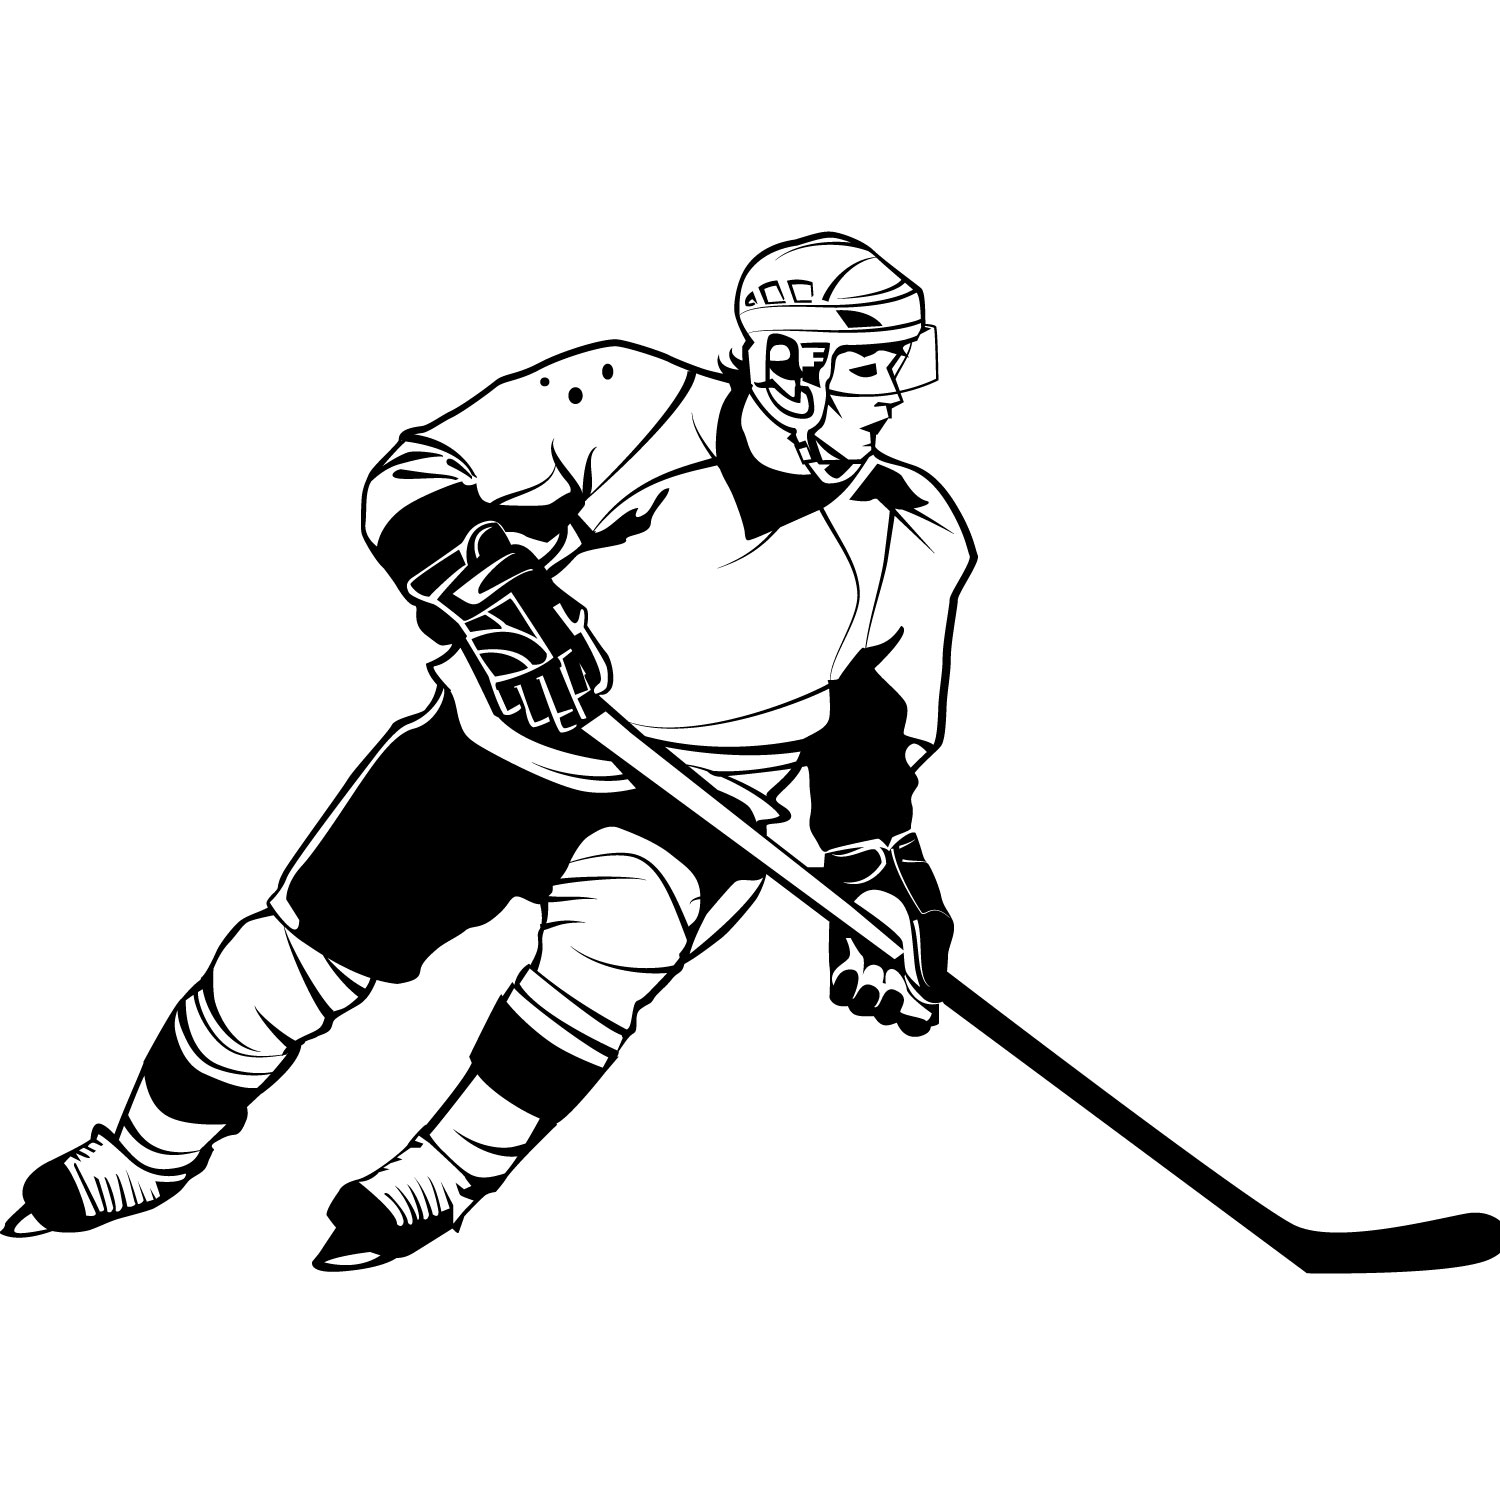 Hockey Clip Art Images Free Clipart Pand-Hockey Clip Art Images Free Clipart Panda Free Clipart Images-5